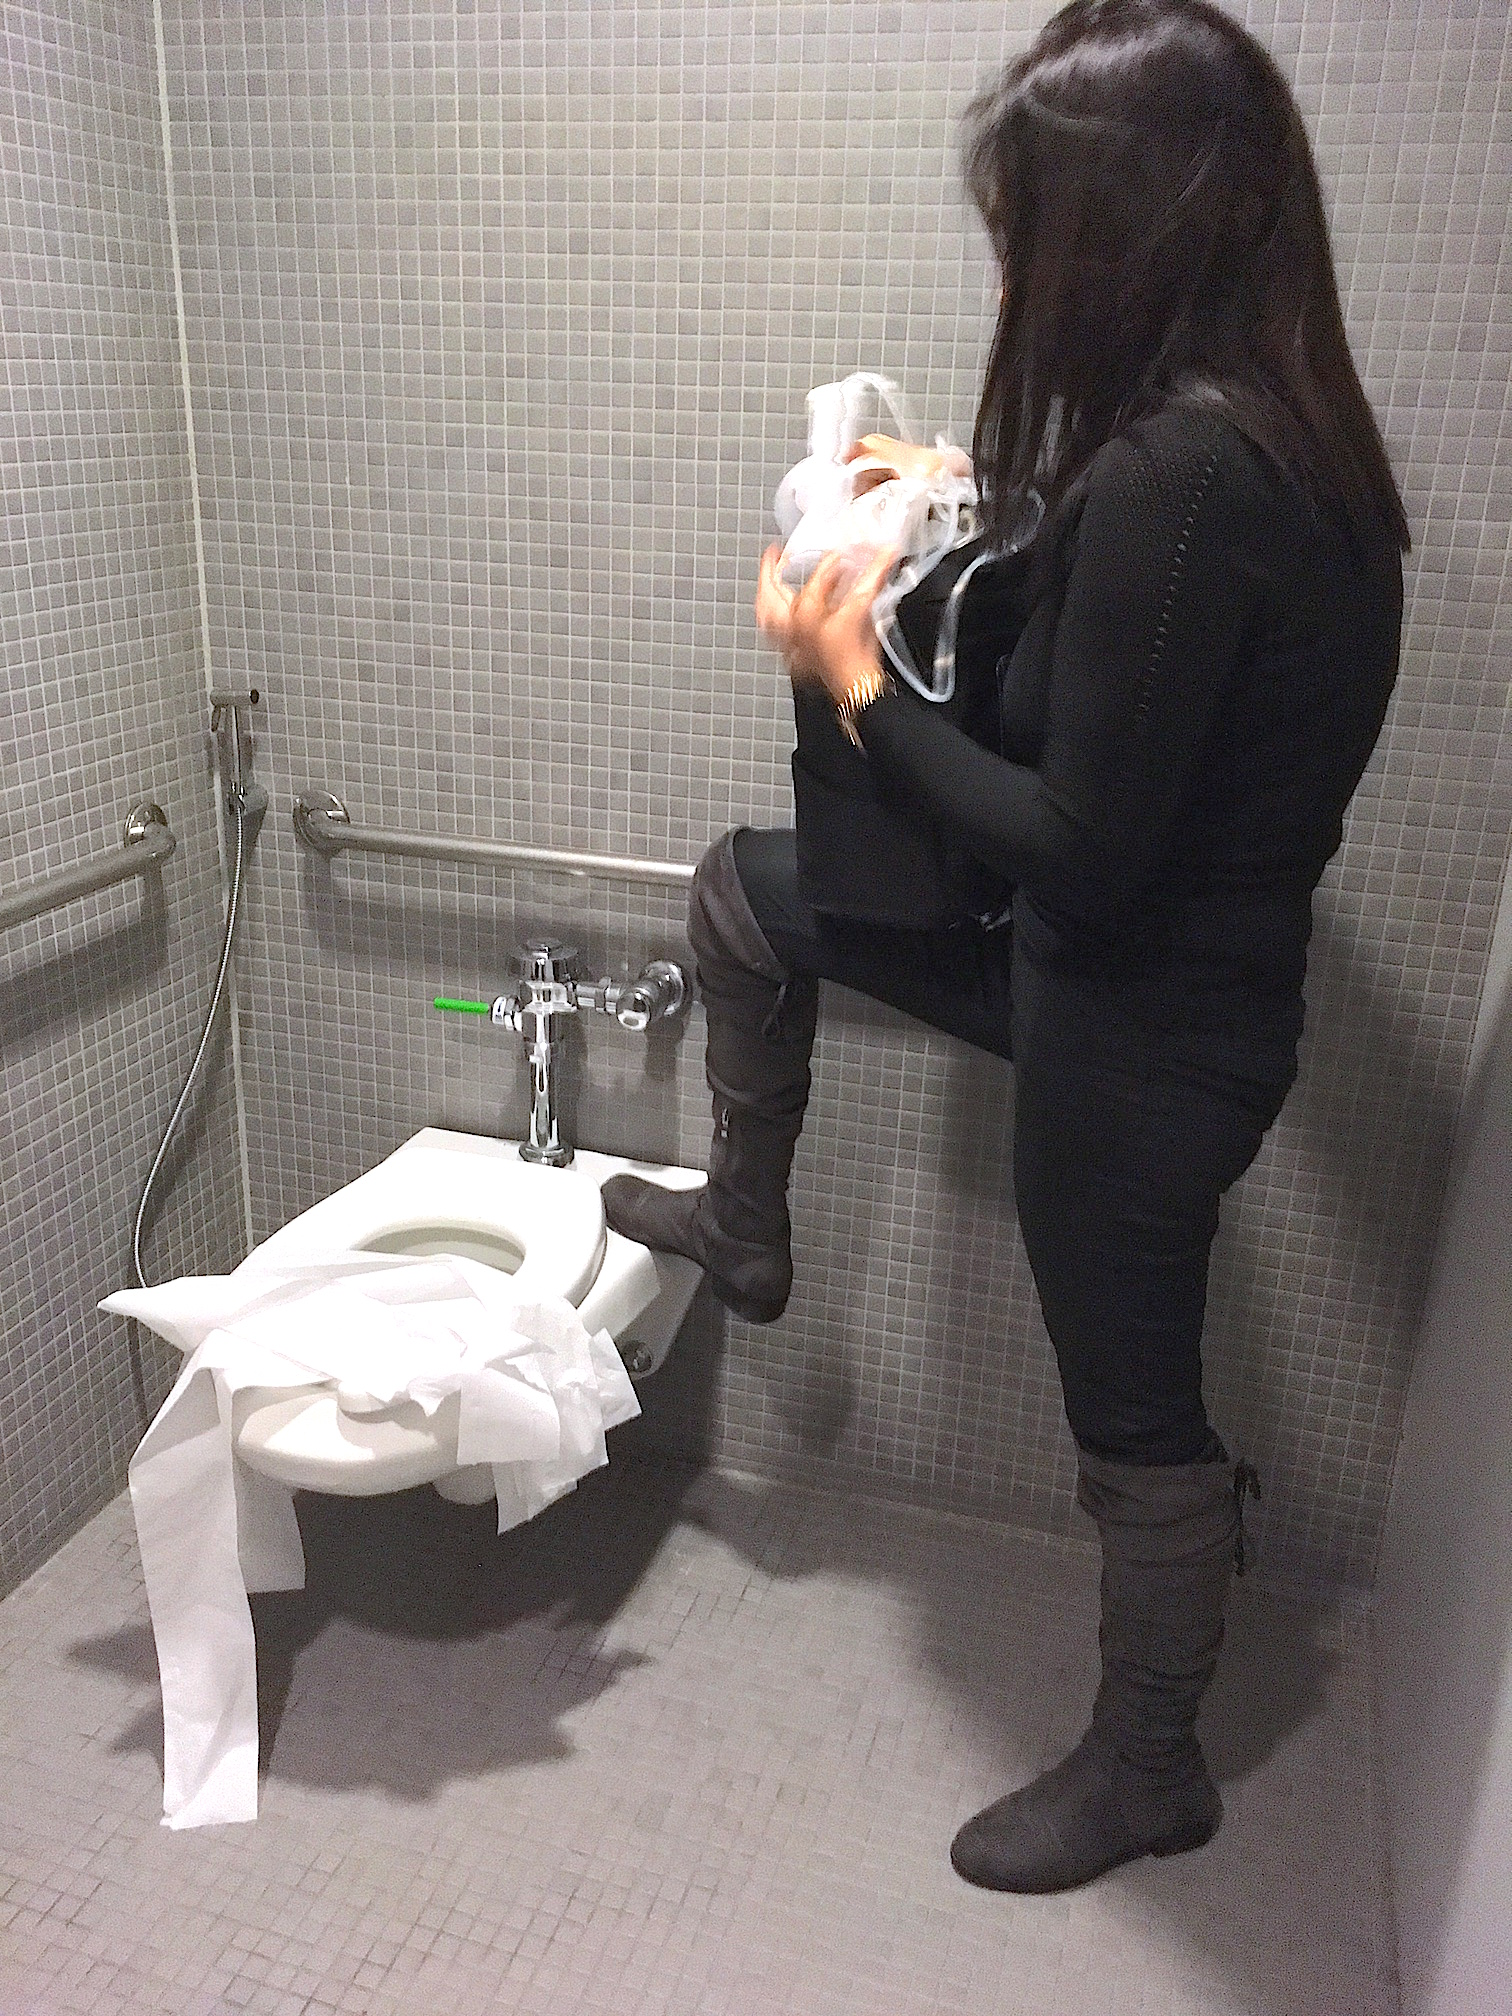 We tested what pumping in a public restroom would look like without the aid of the Mama Shelf. This helped us pinpoint pain points and requirements of the shelf.